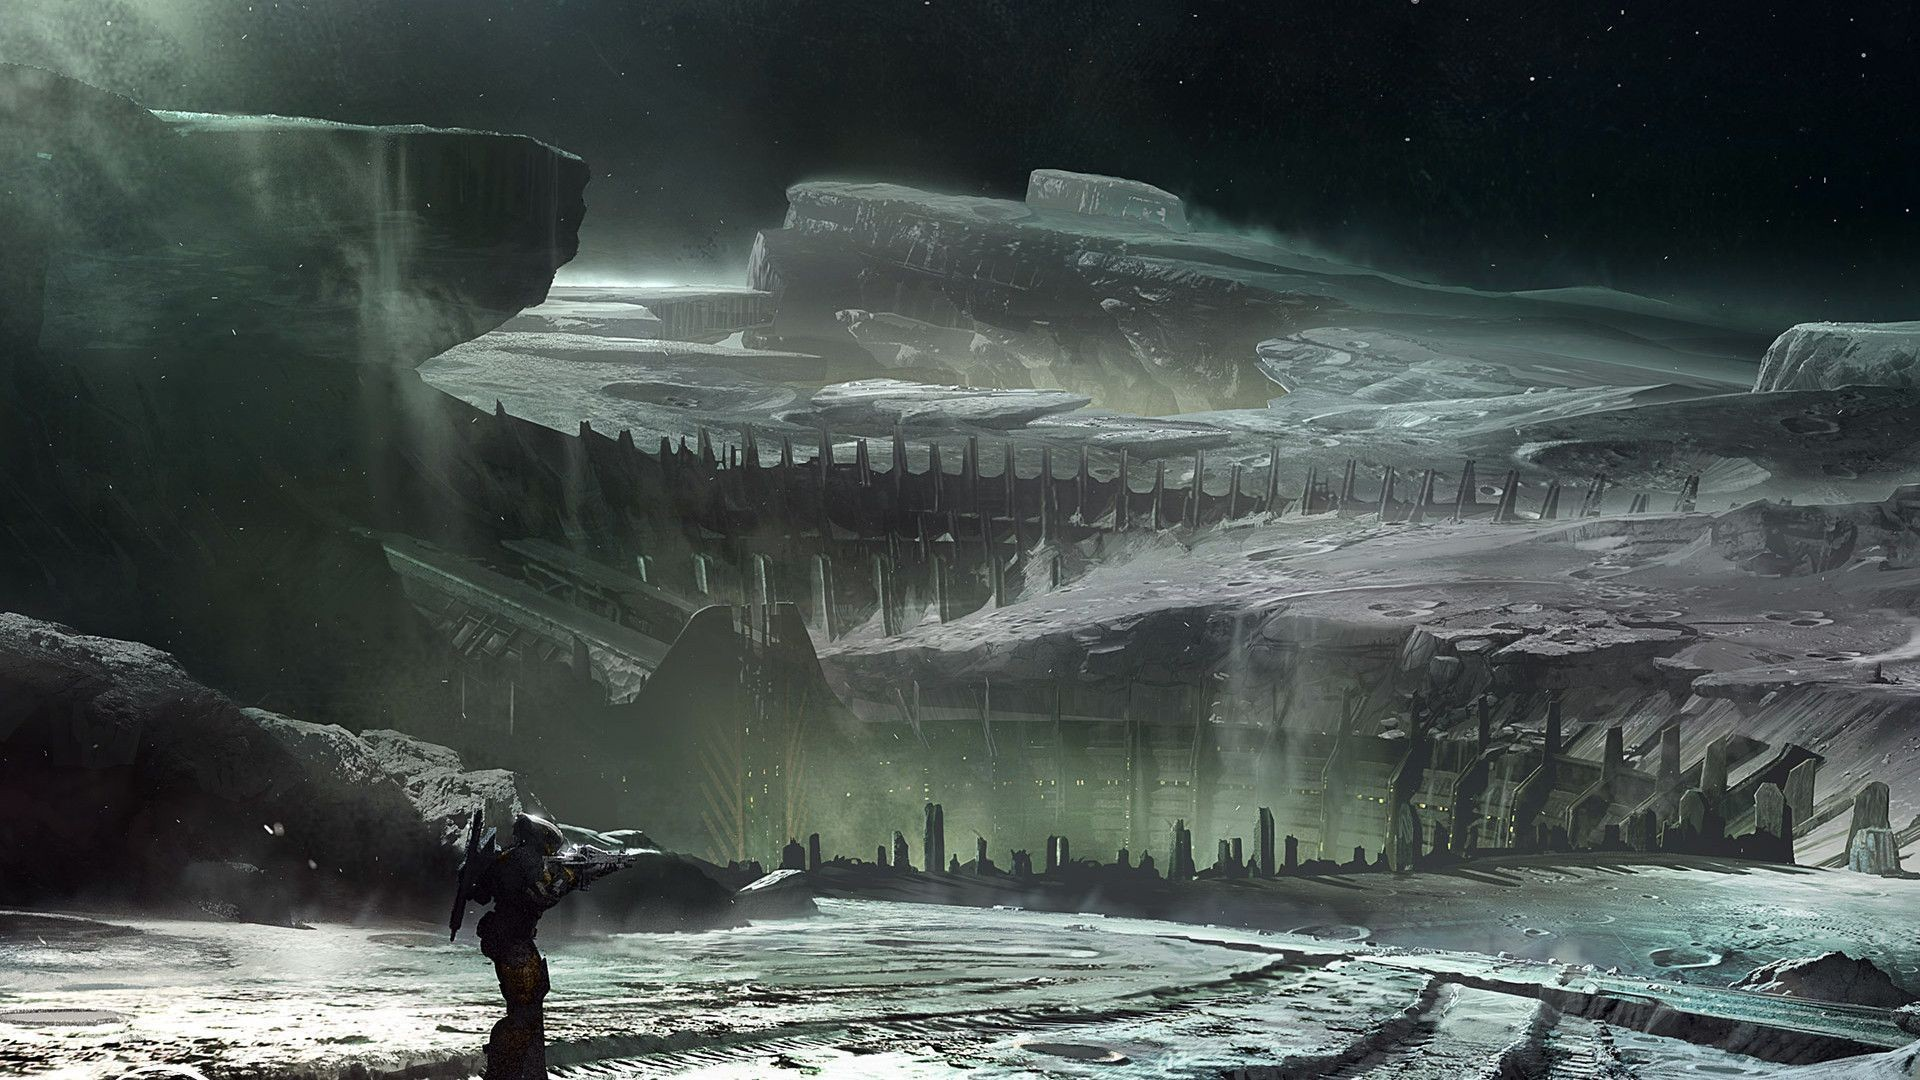 Destiny wallpaper HD Download free cool HD backgrounds for